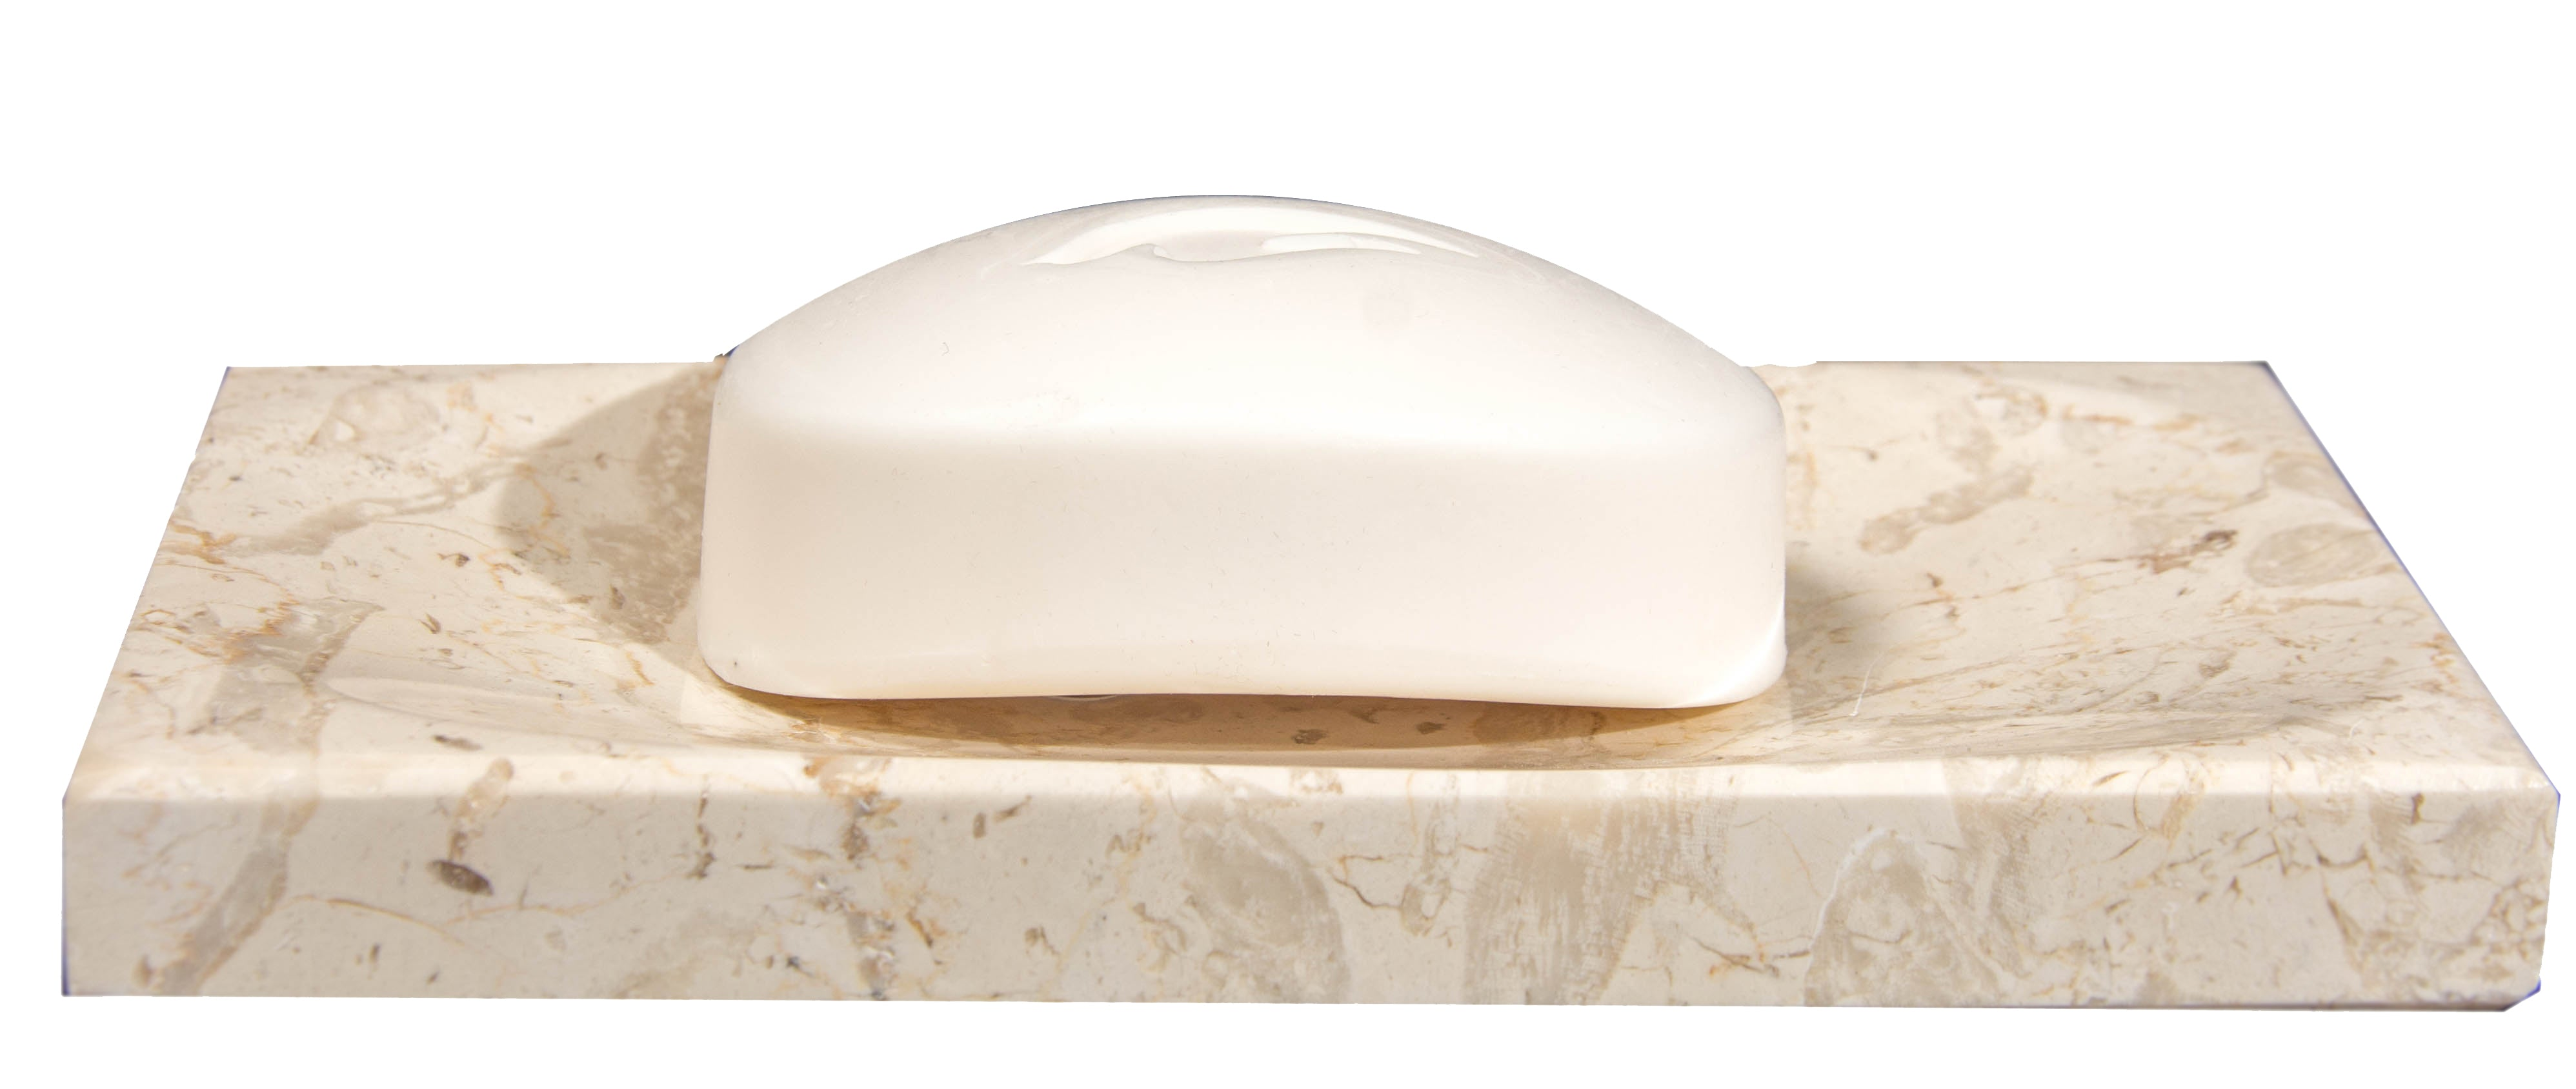 Beige Marble Soap Dish - Polished and Shiny Marble Dish Holder Beautifully Crafted Bathroom Accessory by CraftsOfEgypt